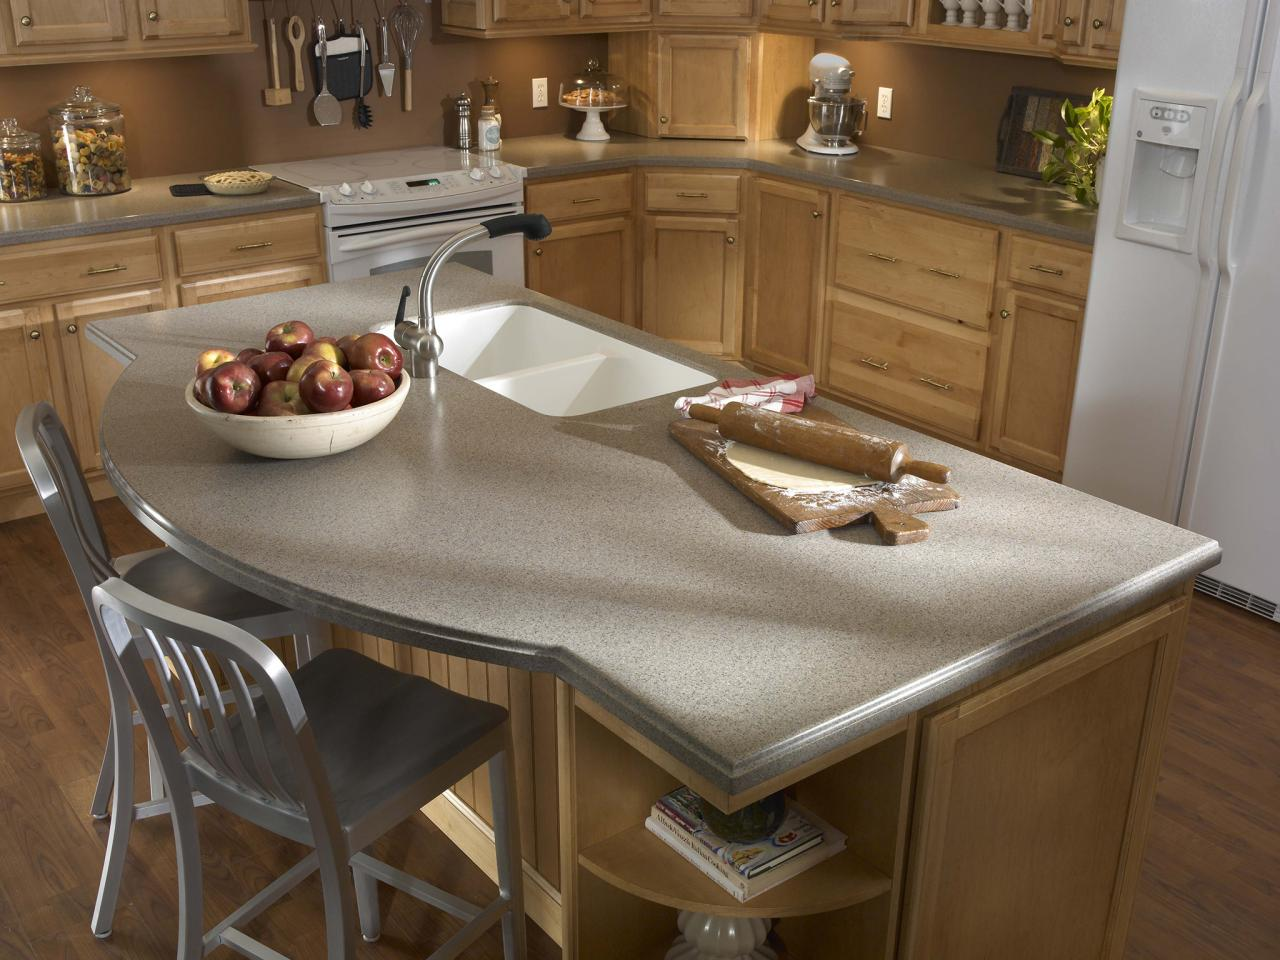 Bathroom Countertop Surface Options : Solid Surface Countertops for the Kitchen HGTV